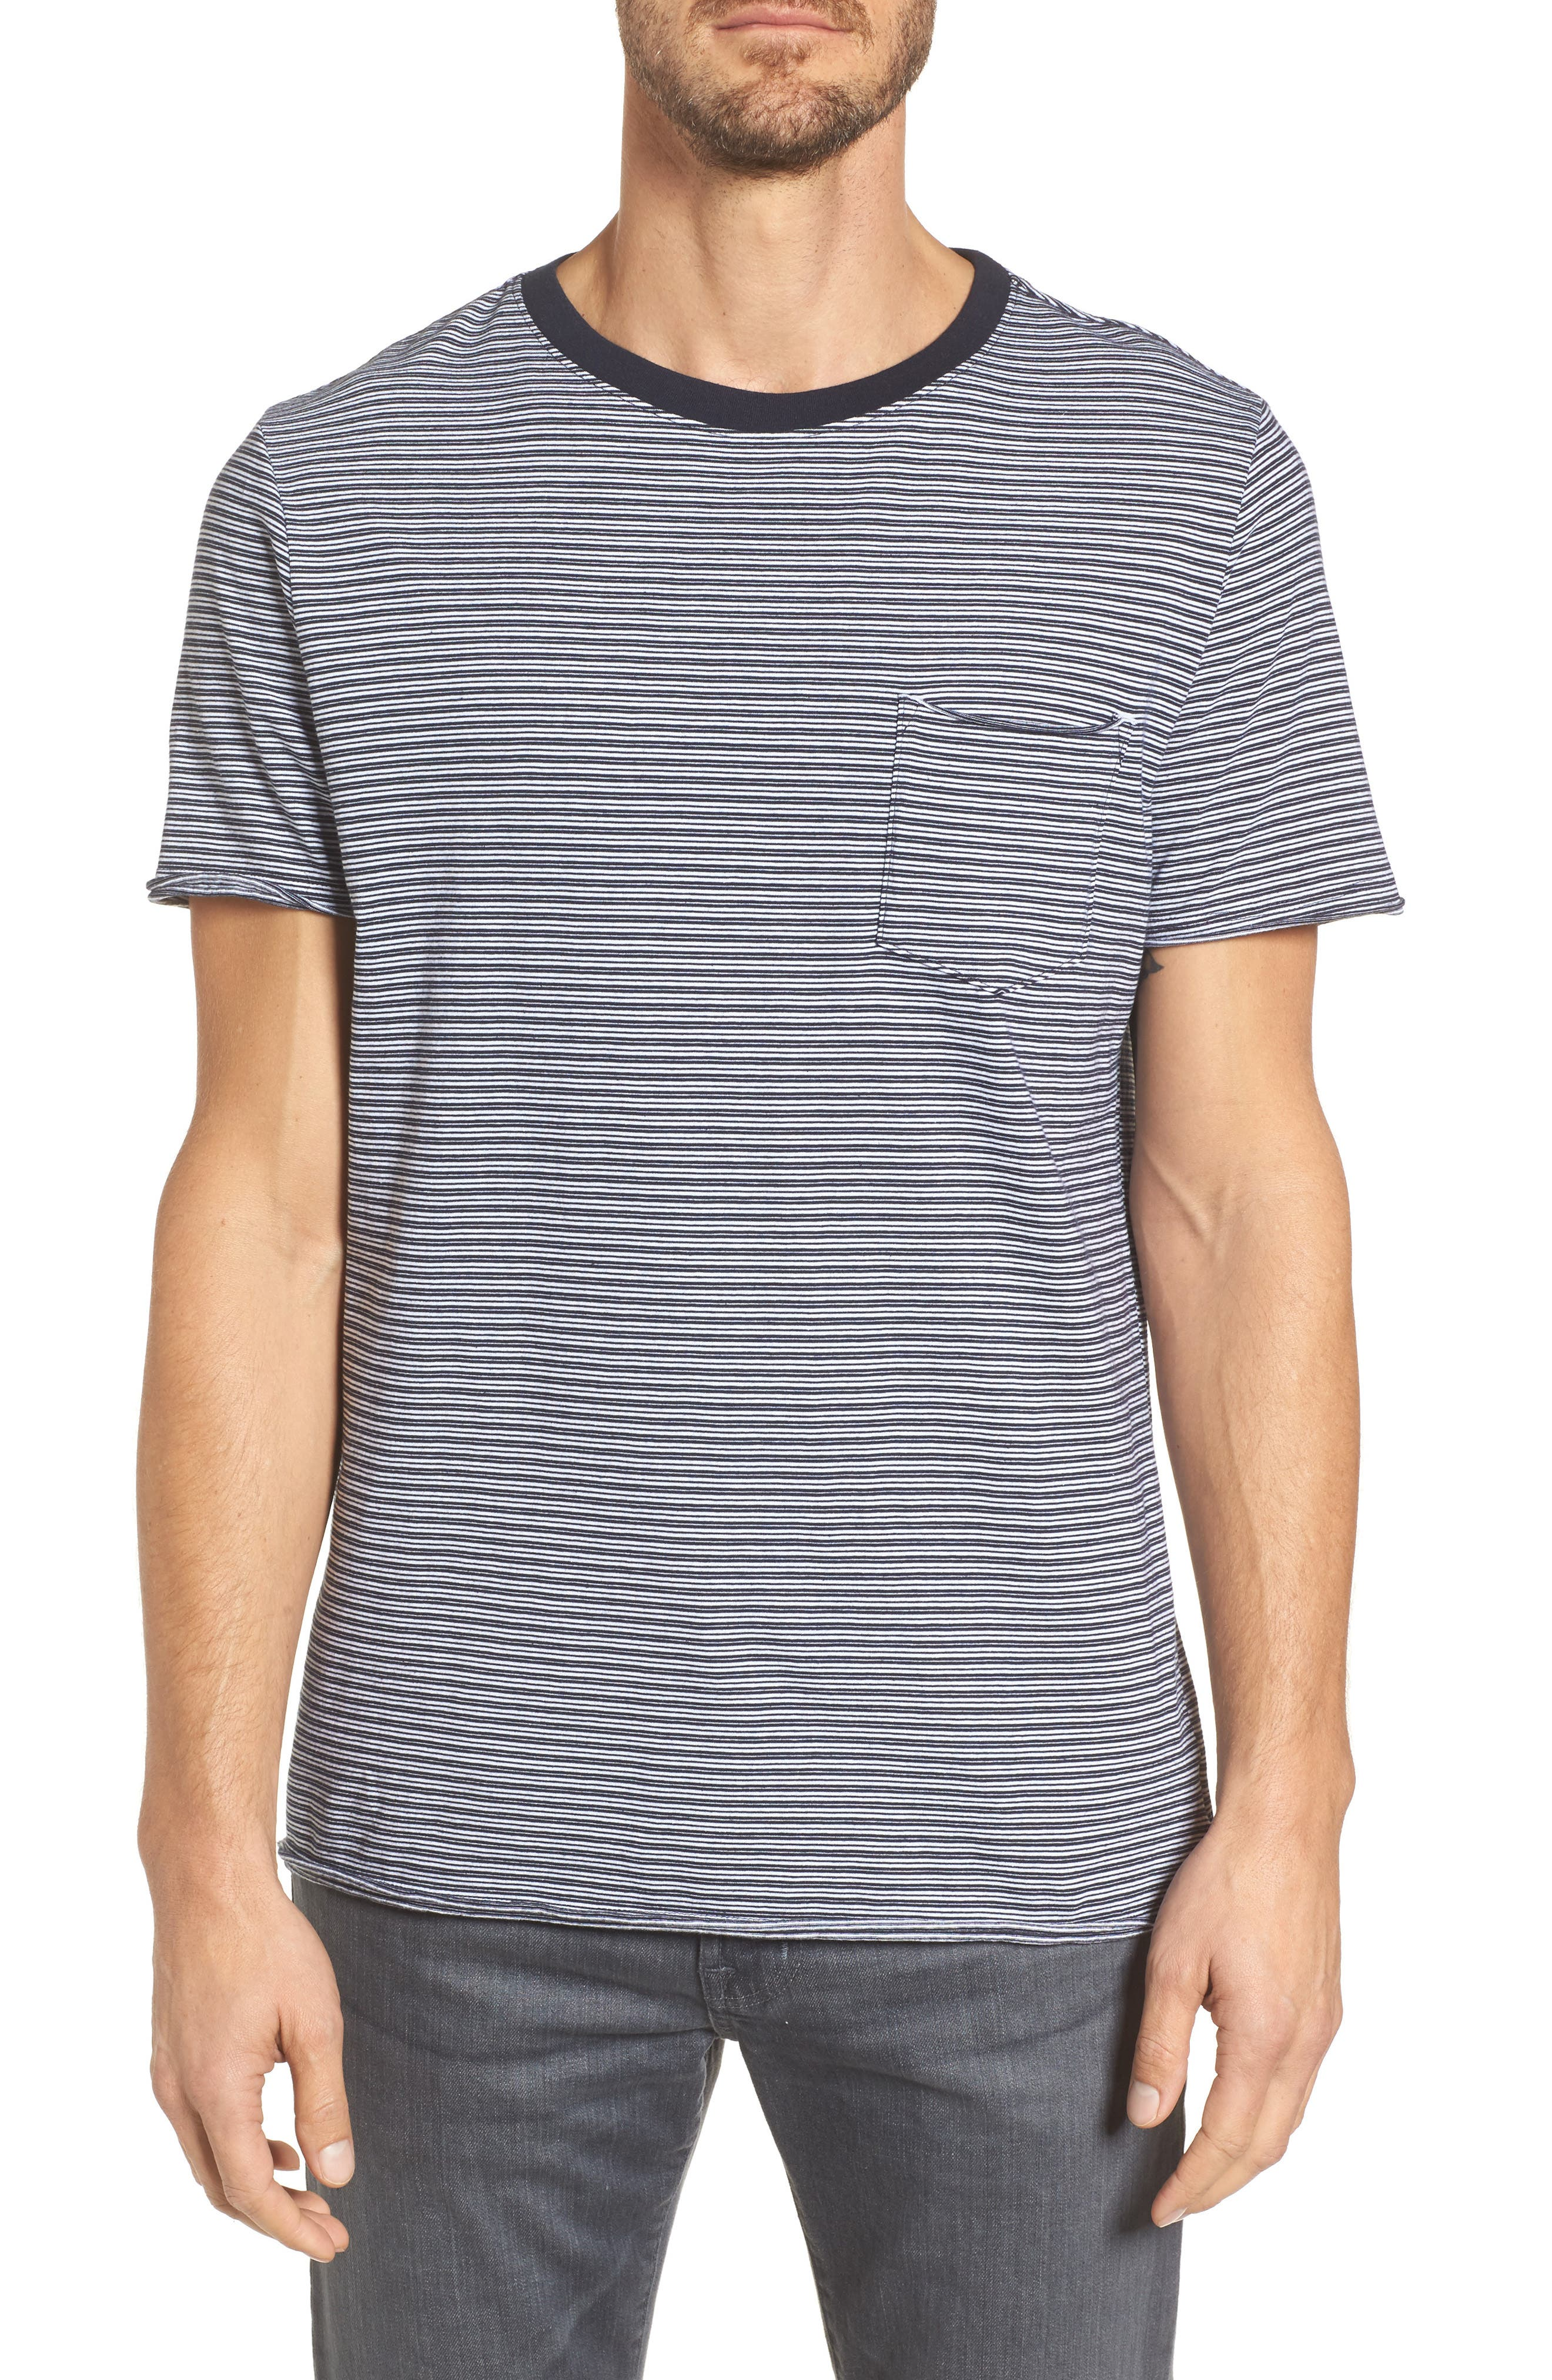 Anders Slim Pocket Crew Tee,                             Main thumbnail 1, color,                             White/ Navy